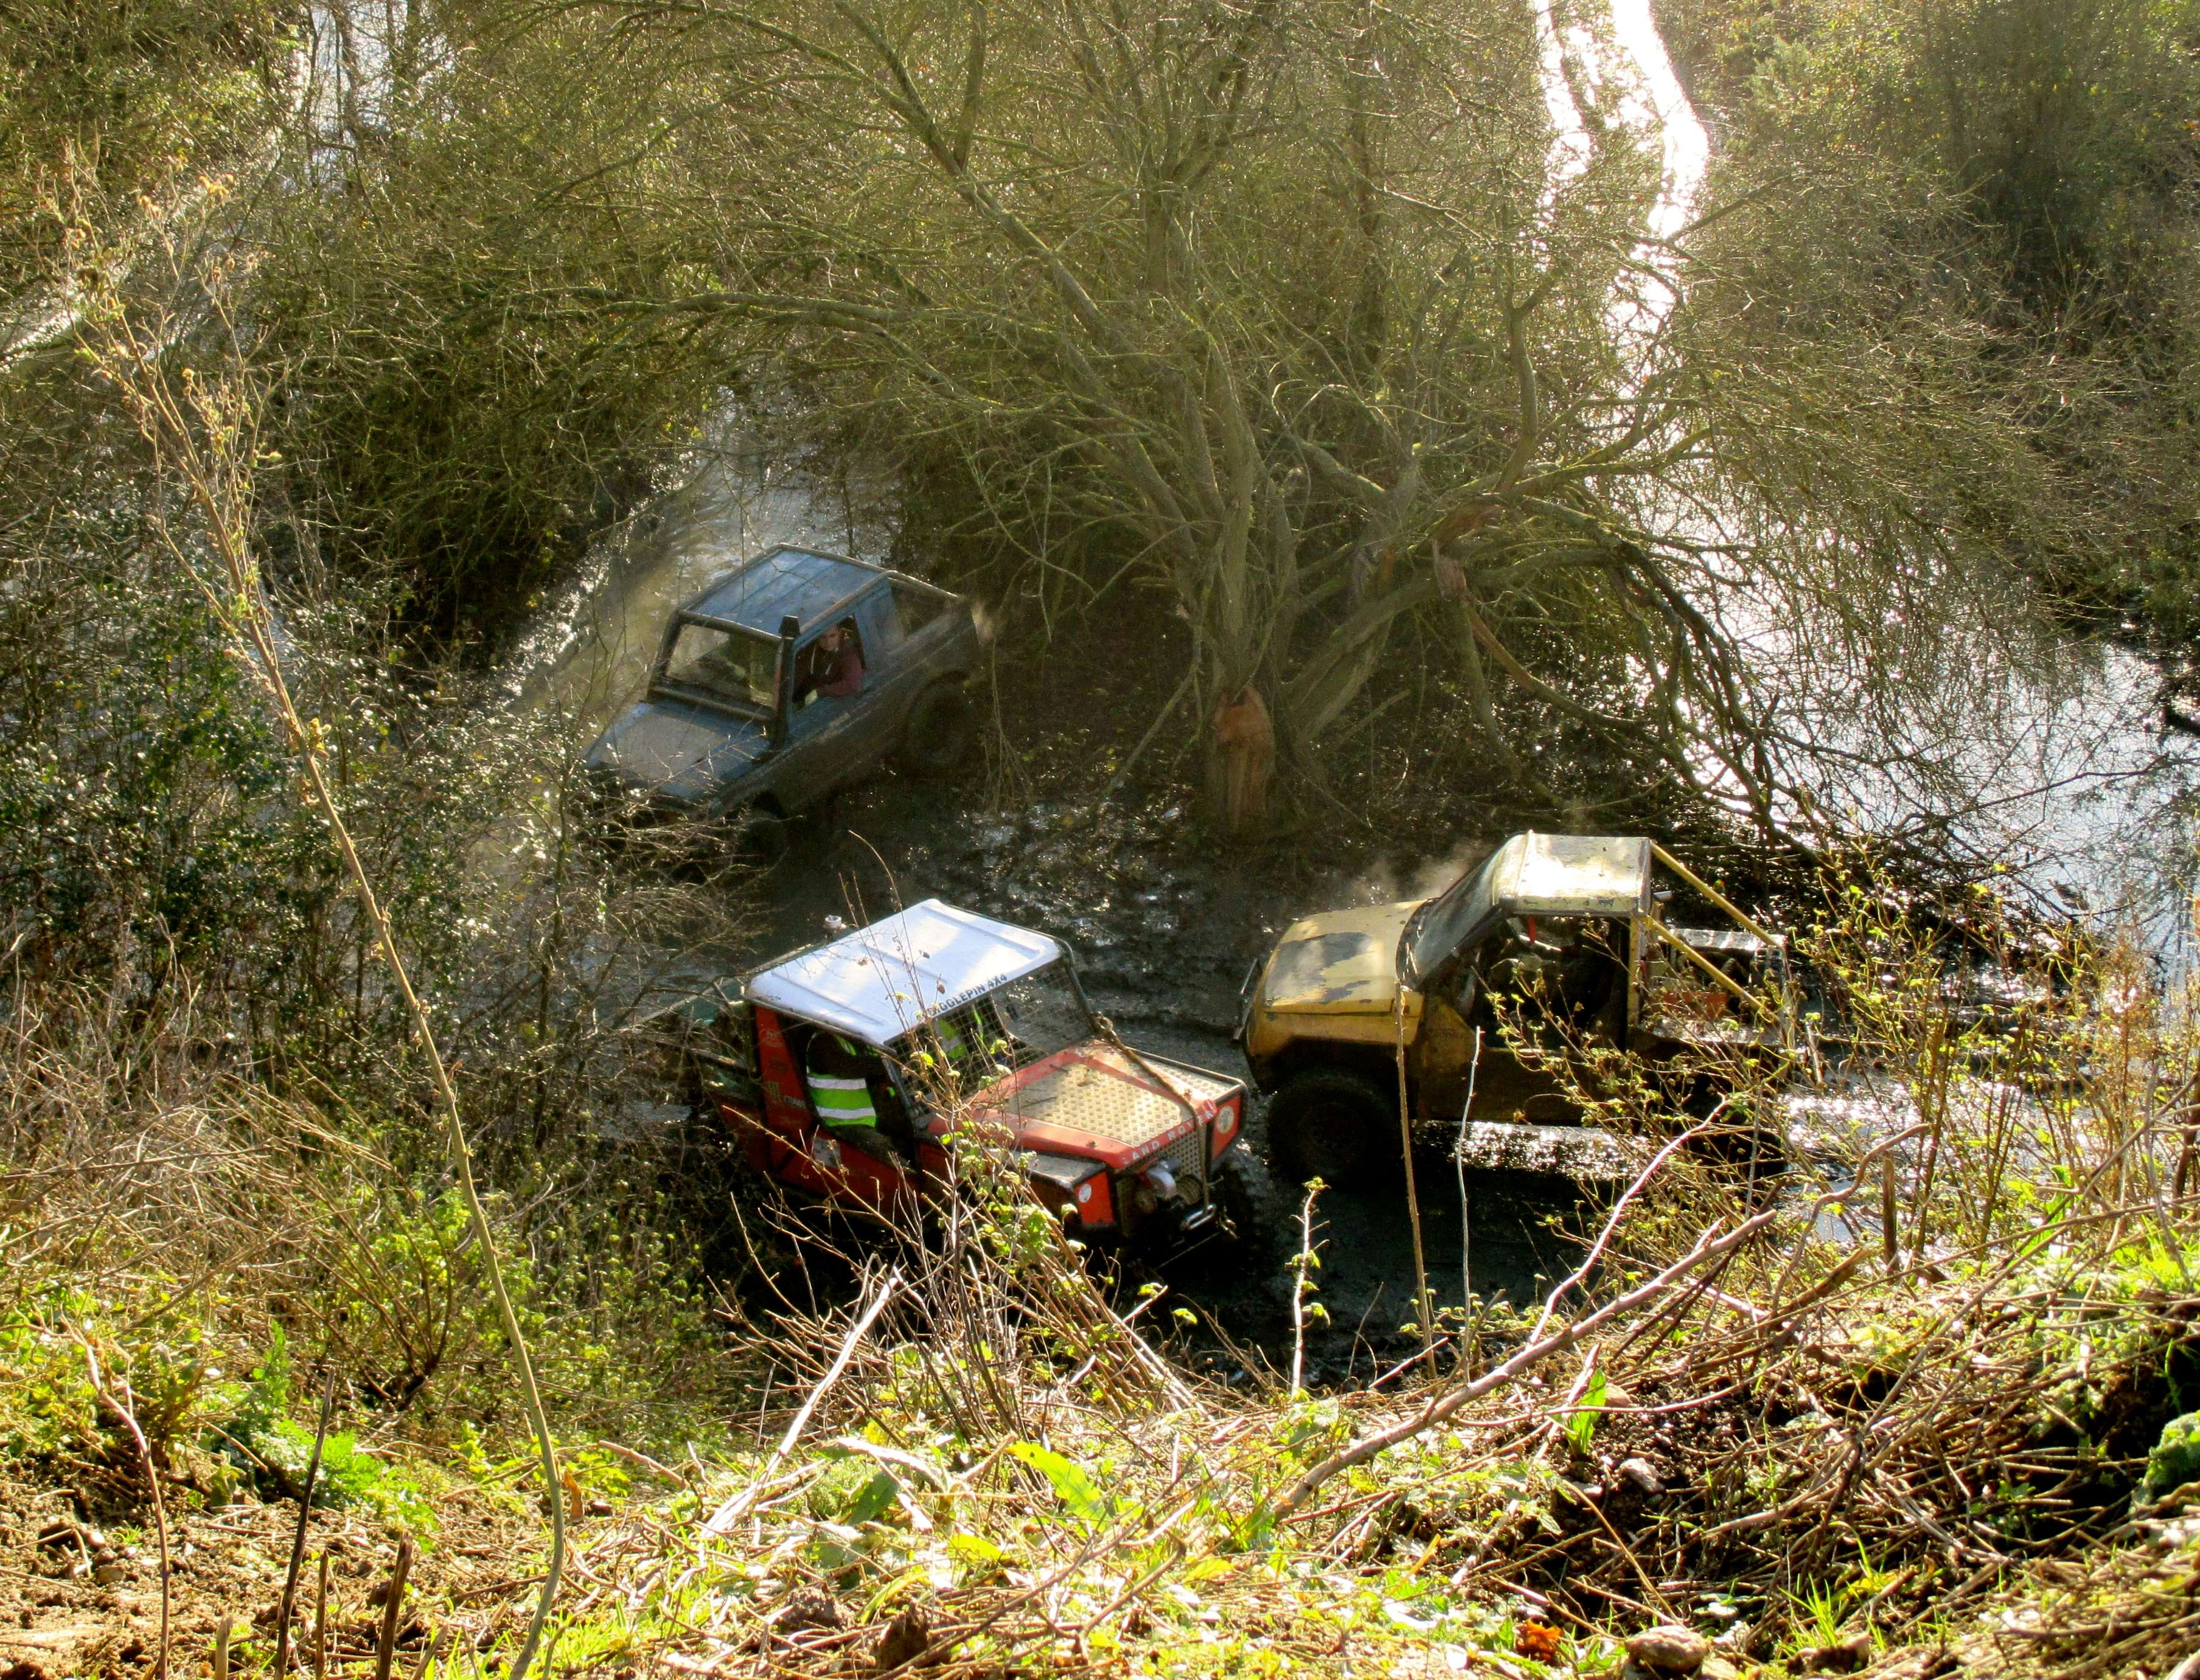 Reasons to own a Land Rover - No hill too steep, no valley too deep